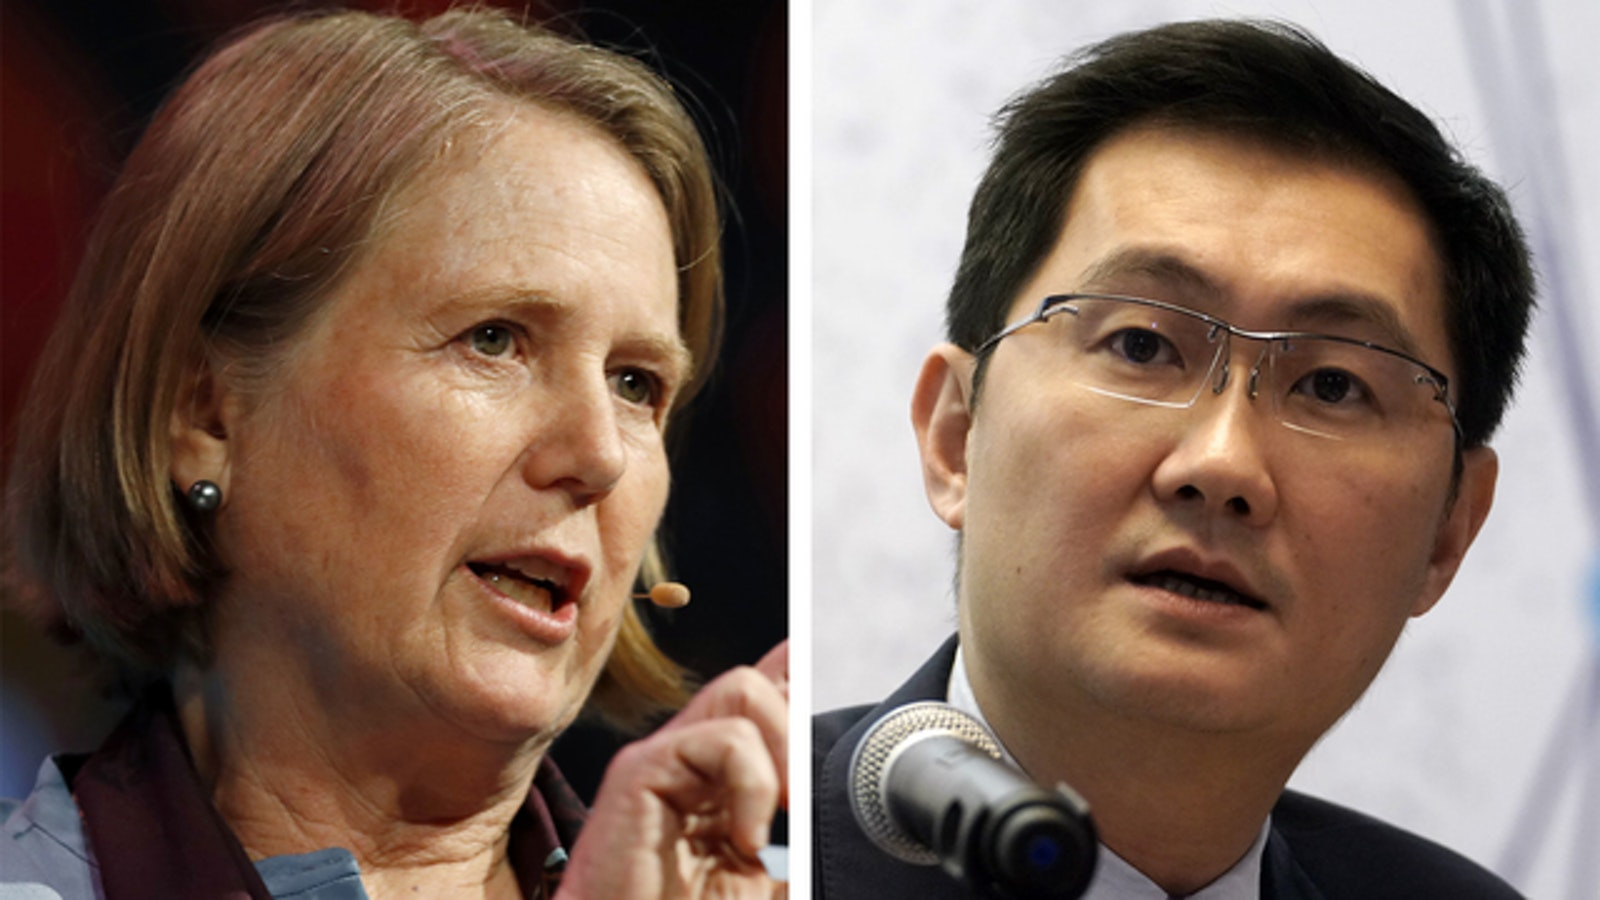 Google Cloud's outgoing CEO Diane Greene and Tencent CEO Pony Ma. Photos by Bloomberg.